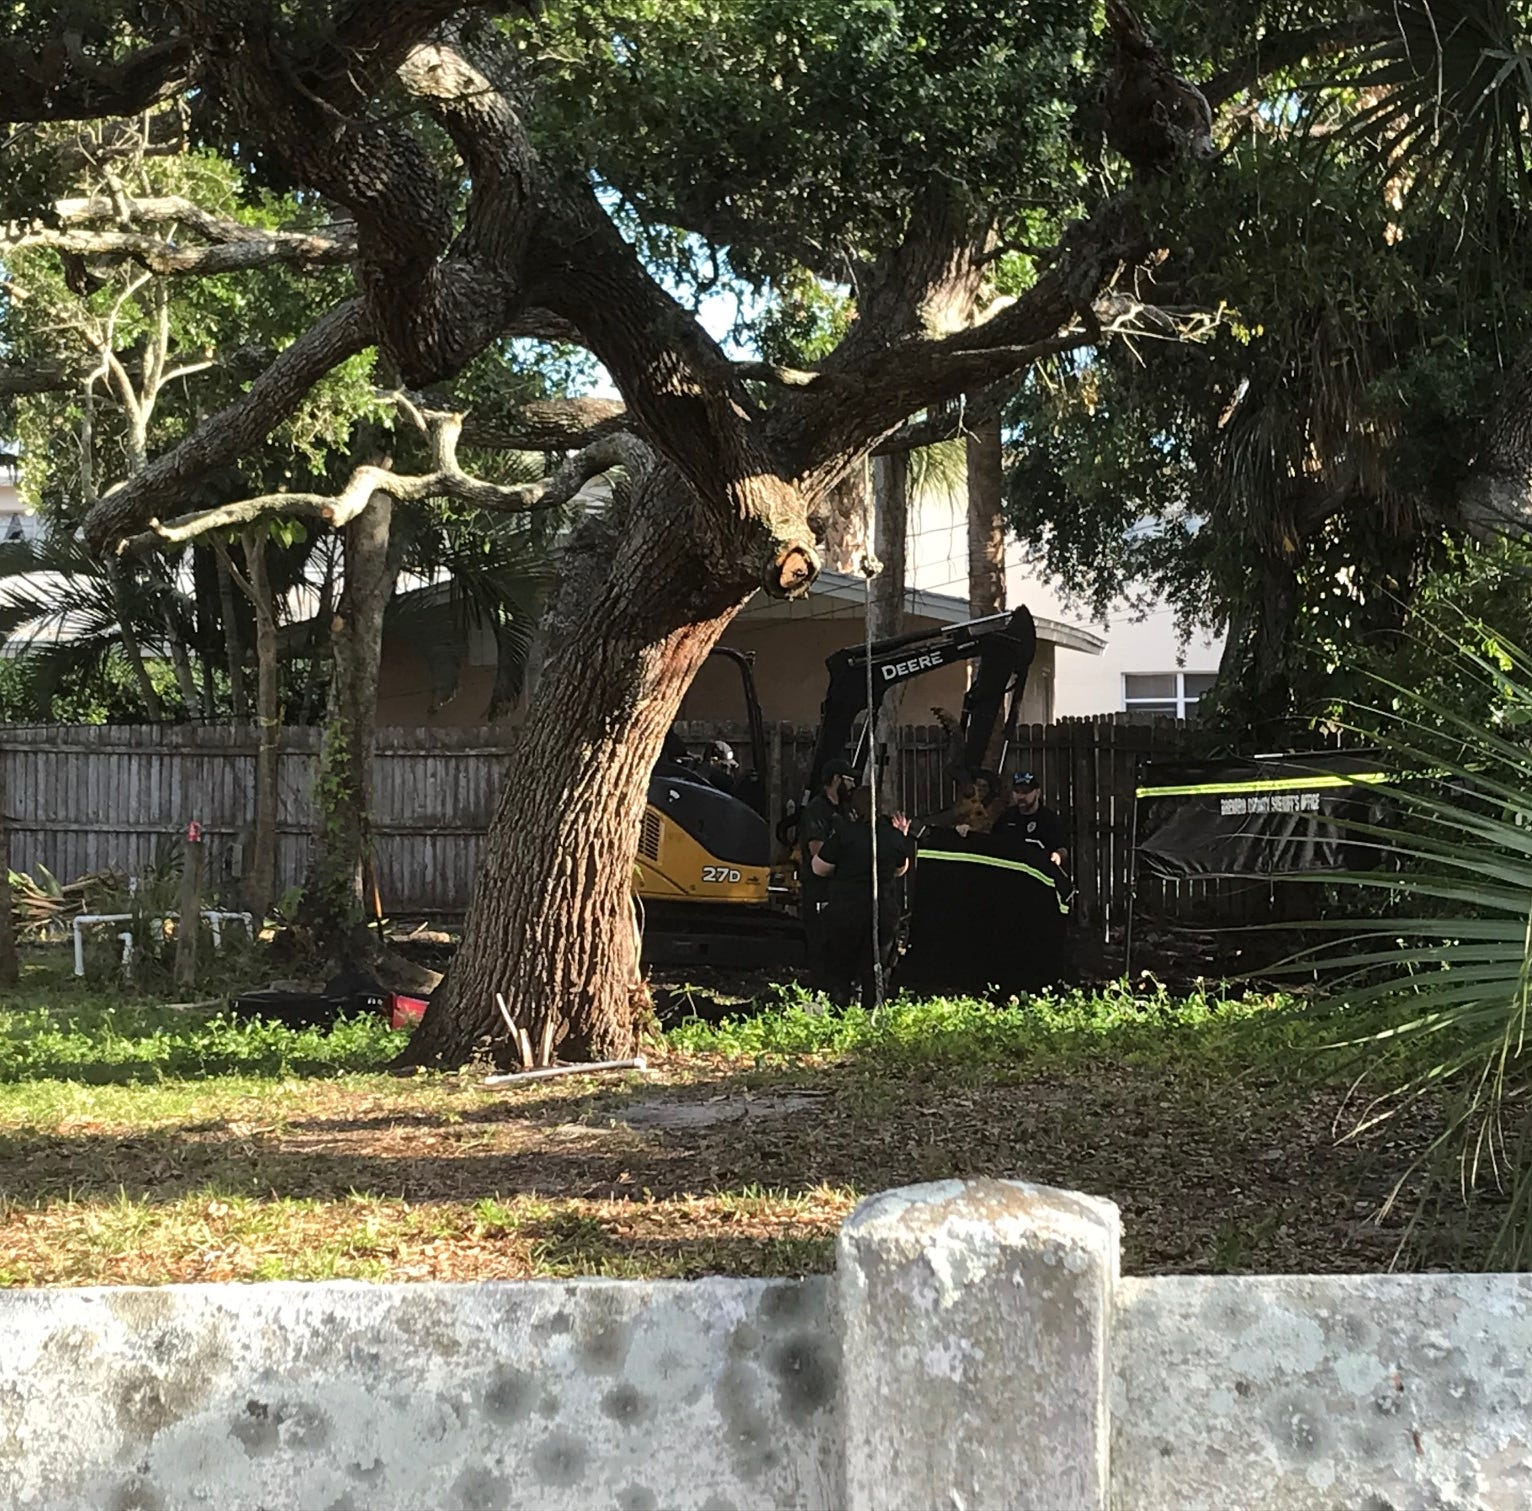 Cocoa Beach investigators conduct backyard excavation looking for a body; nothing found